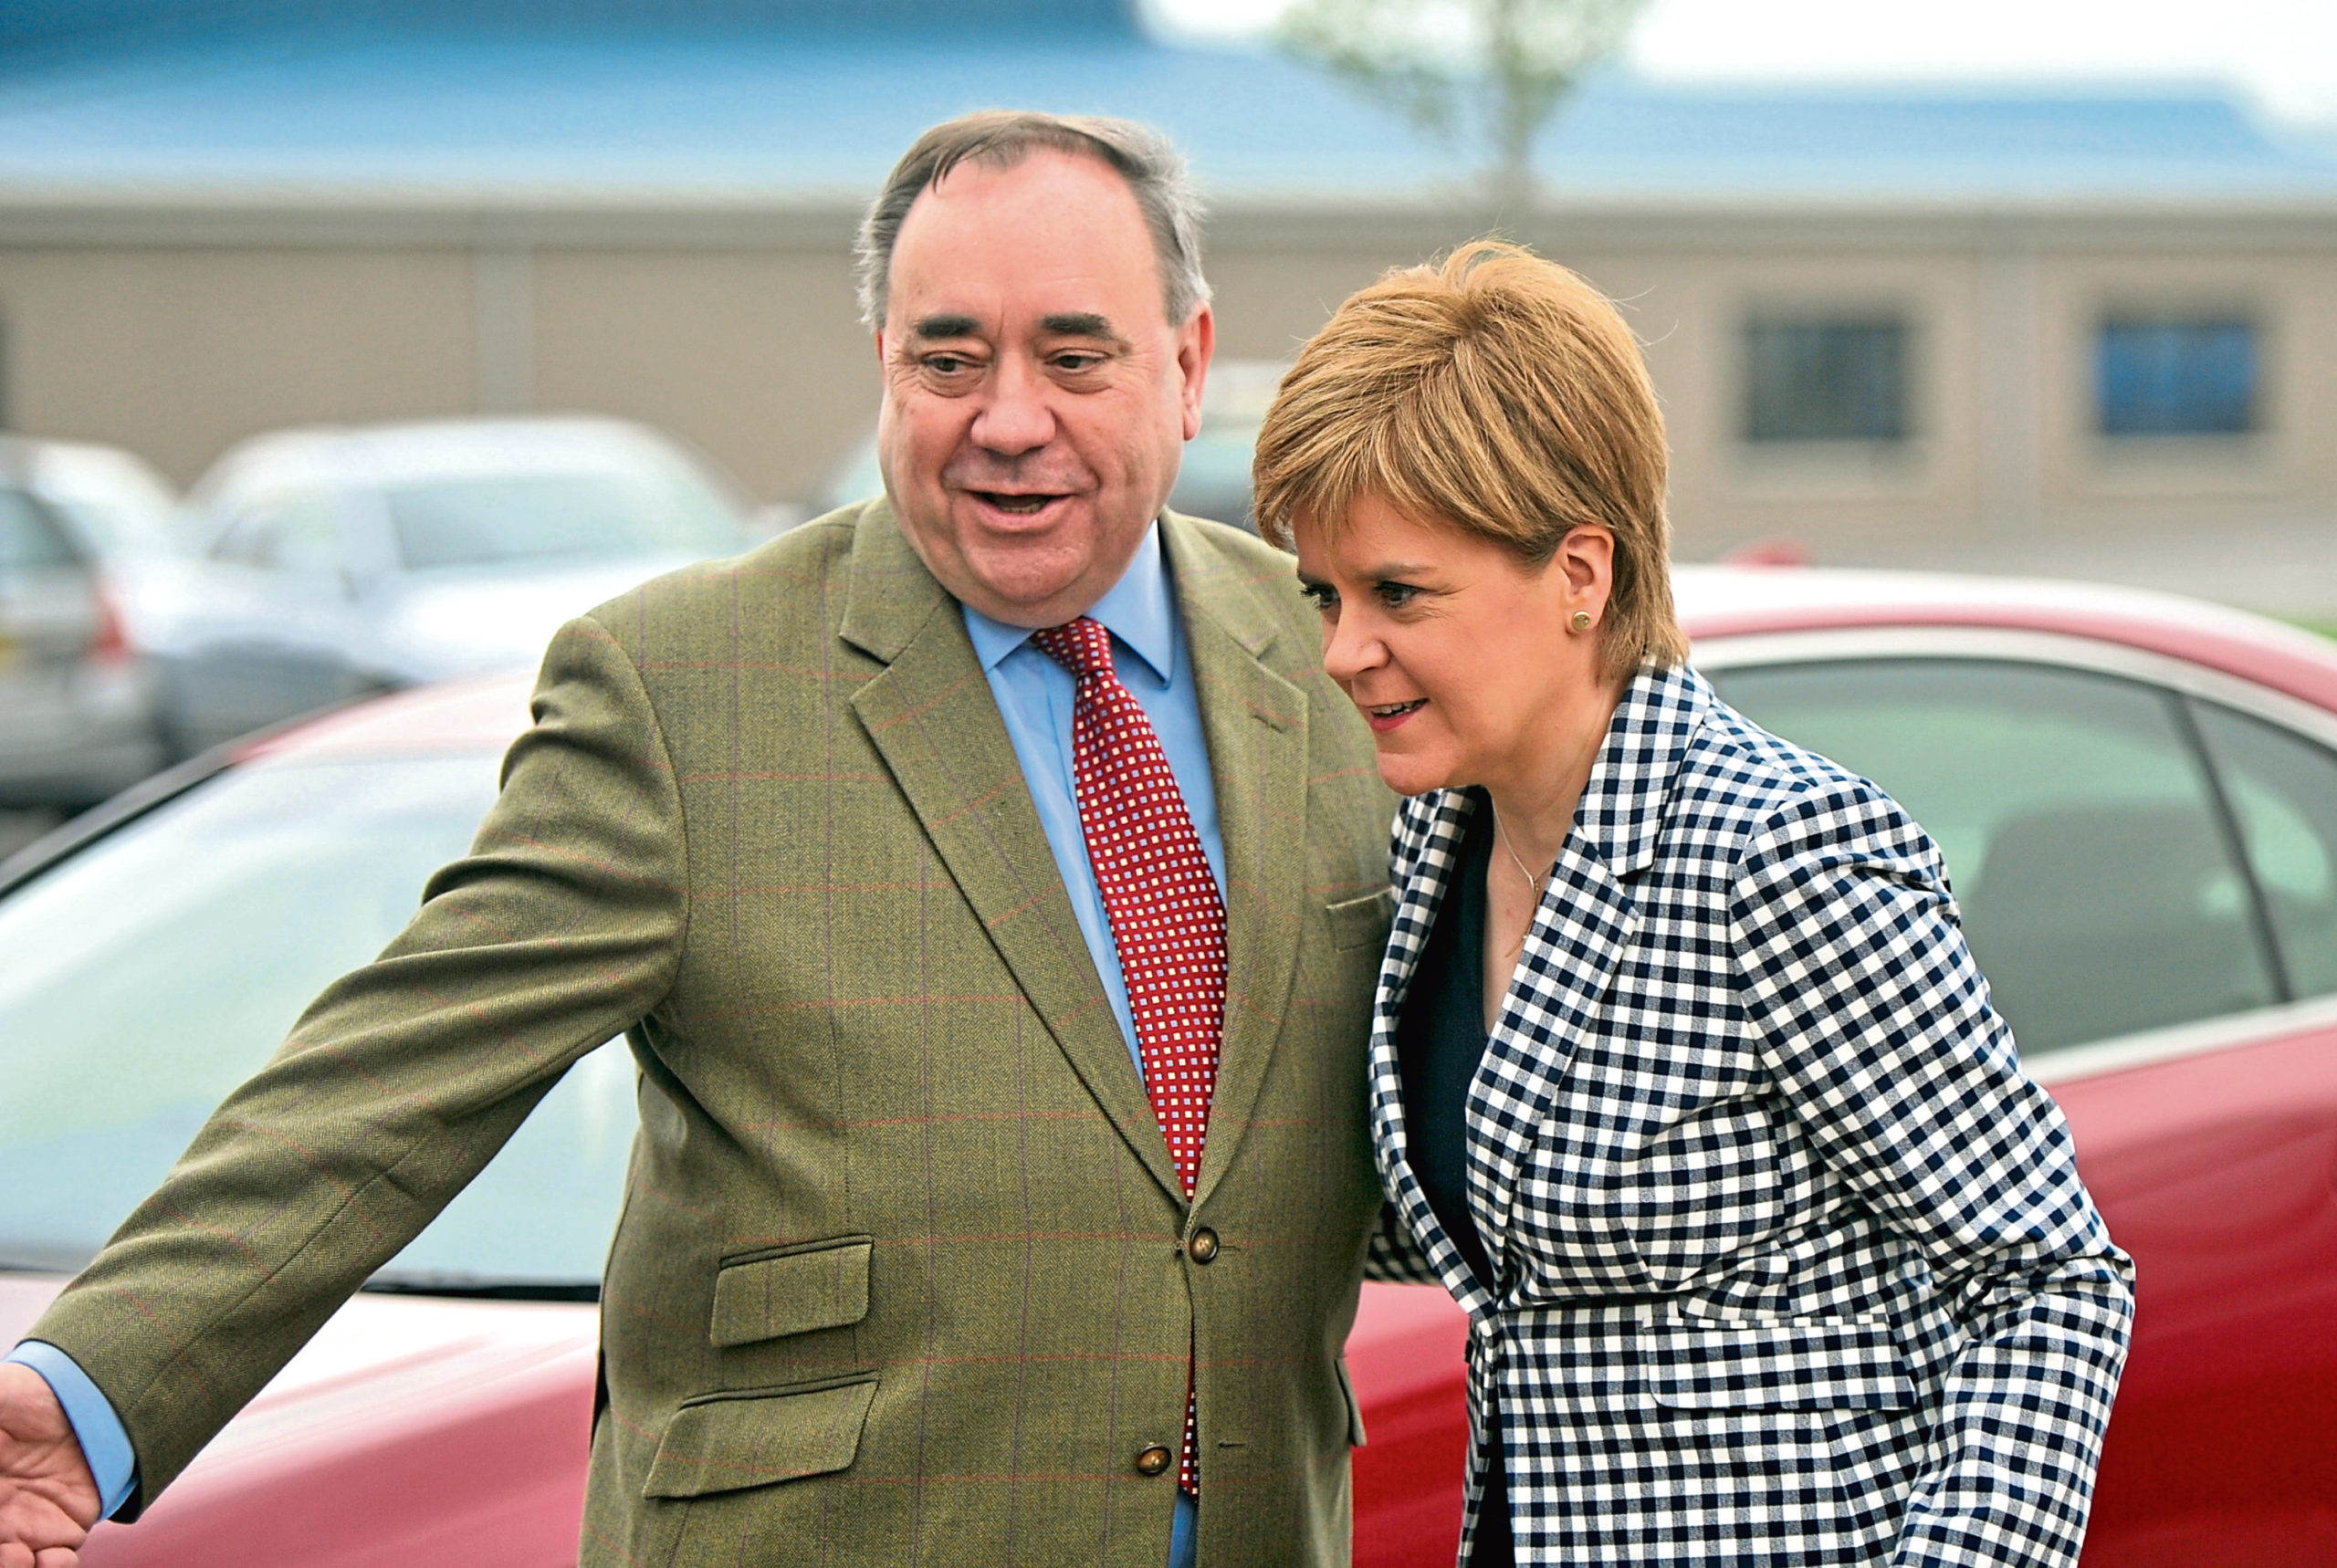 SNP leader Nicola Sturgeon will highlight the contrast between the SNP's investment in Childcare and Tory cuts to child tax credits as she visits Dreams Daycare nursery in Insch.  Pictured are SNP leader Nicola Sturgeon being greeted by Alex Salmond.  01/05/17  Picture by HEATHER FOWLIE